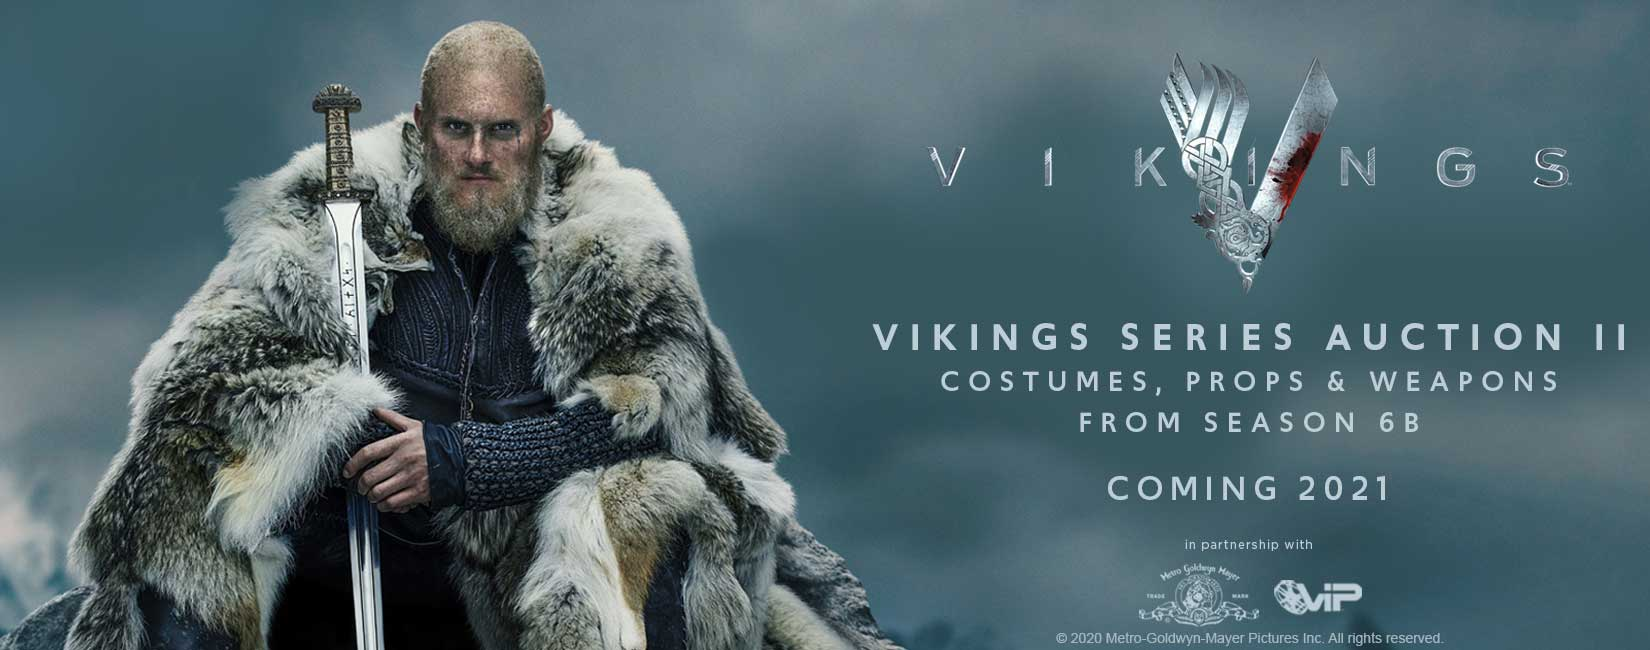 Vikings Series Auction